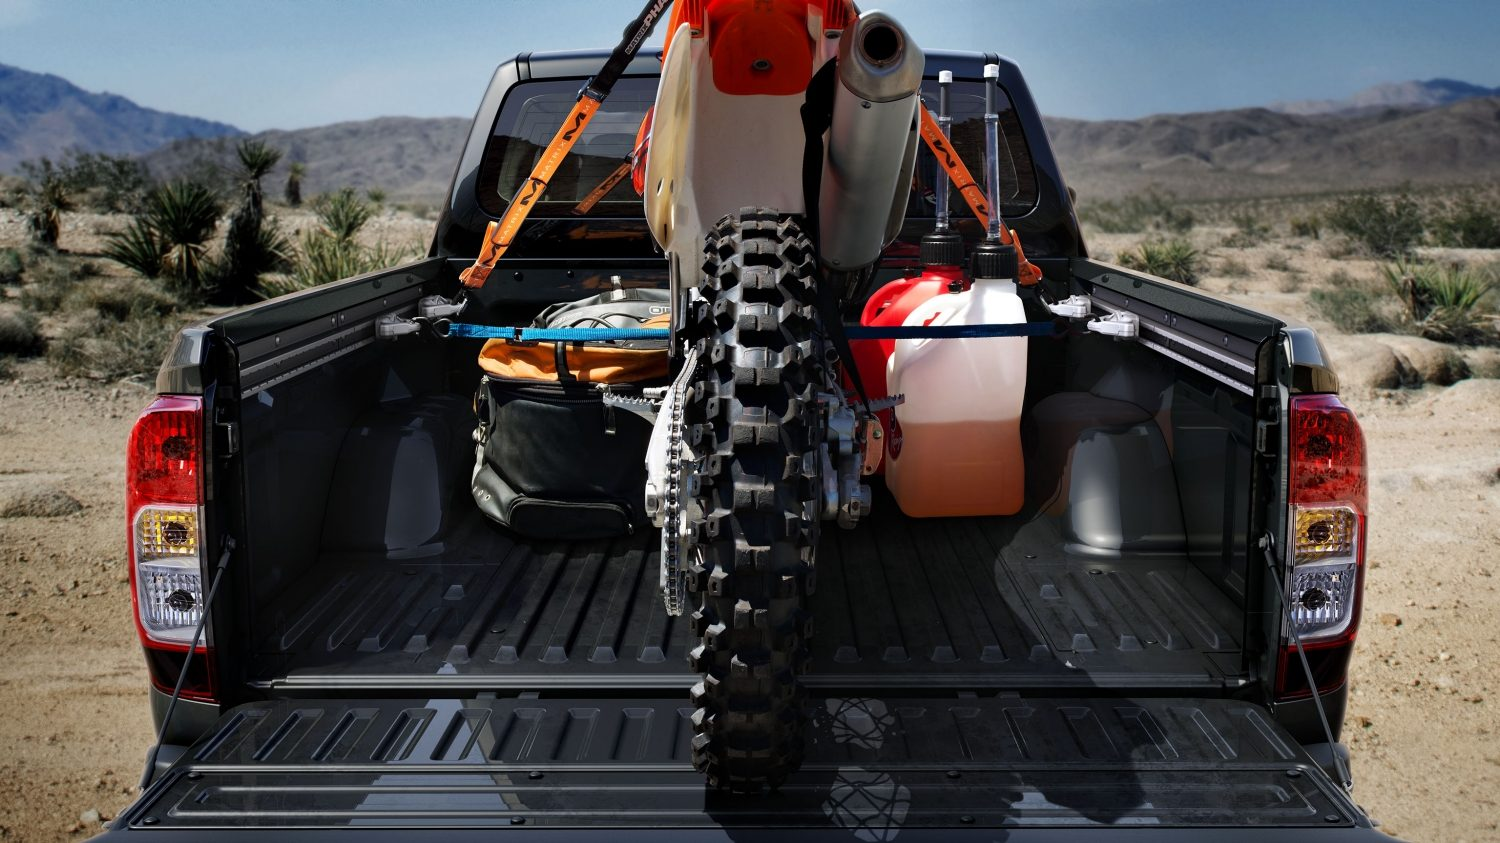 Nissan Navara - Rear view of cargo bed with dirt bike